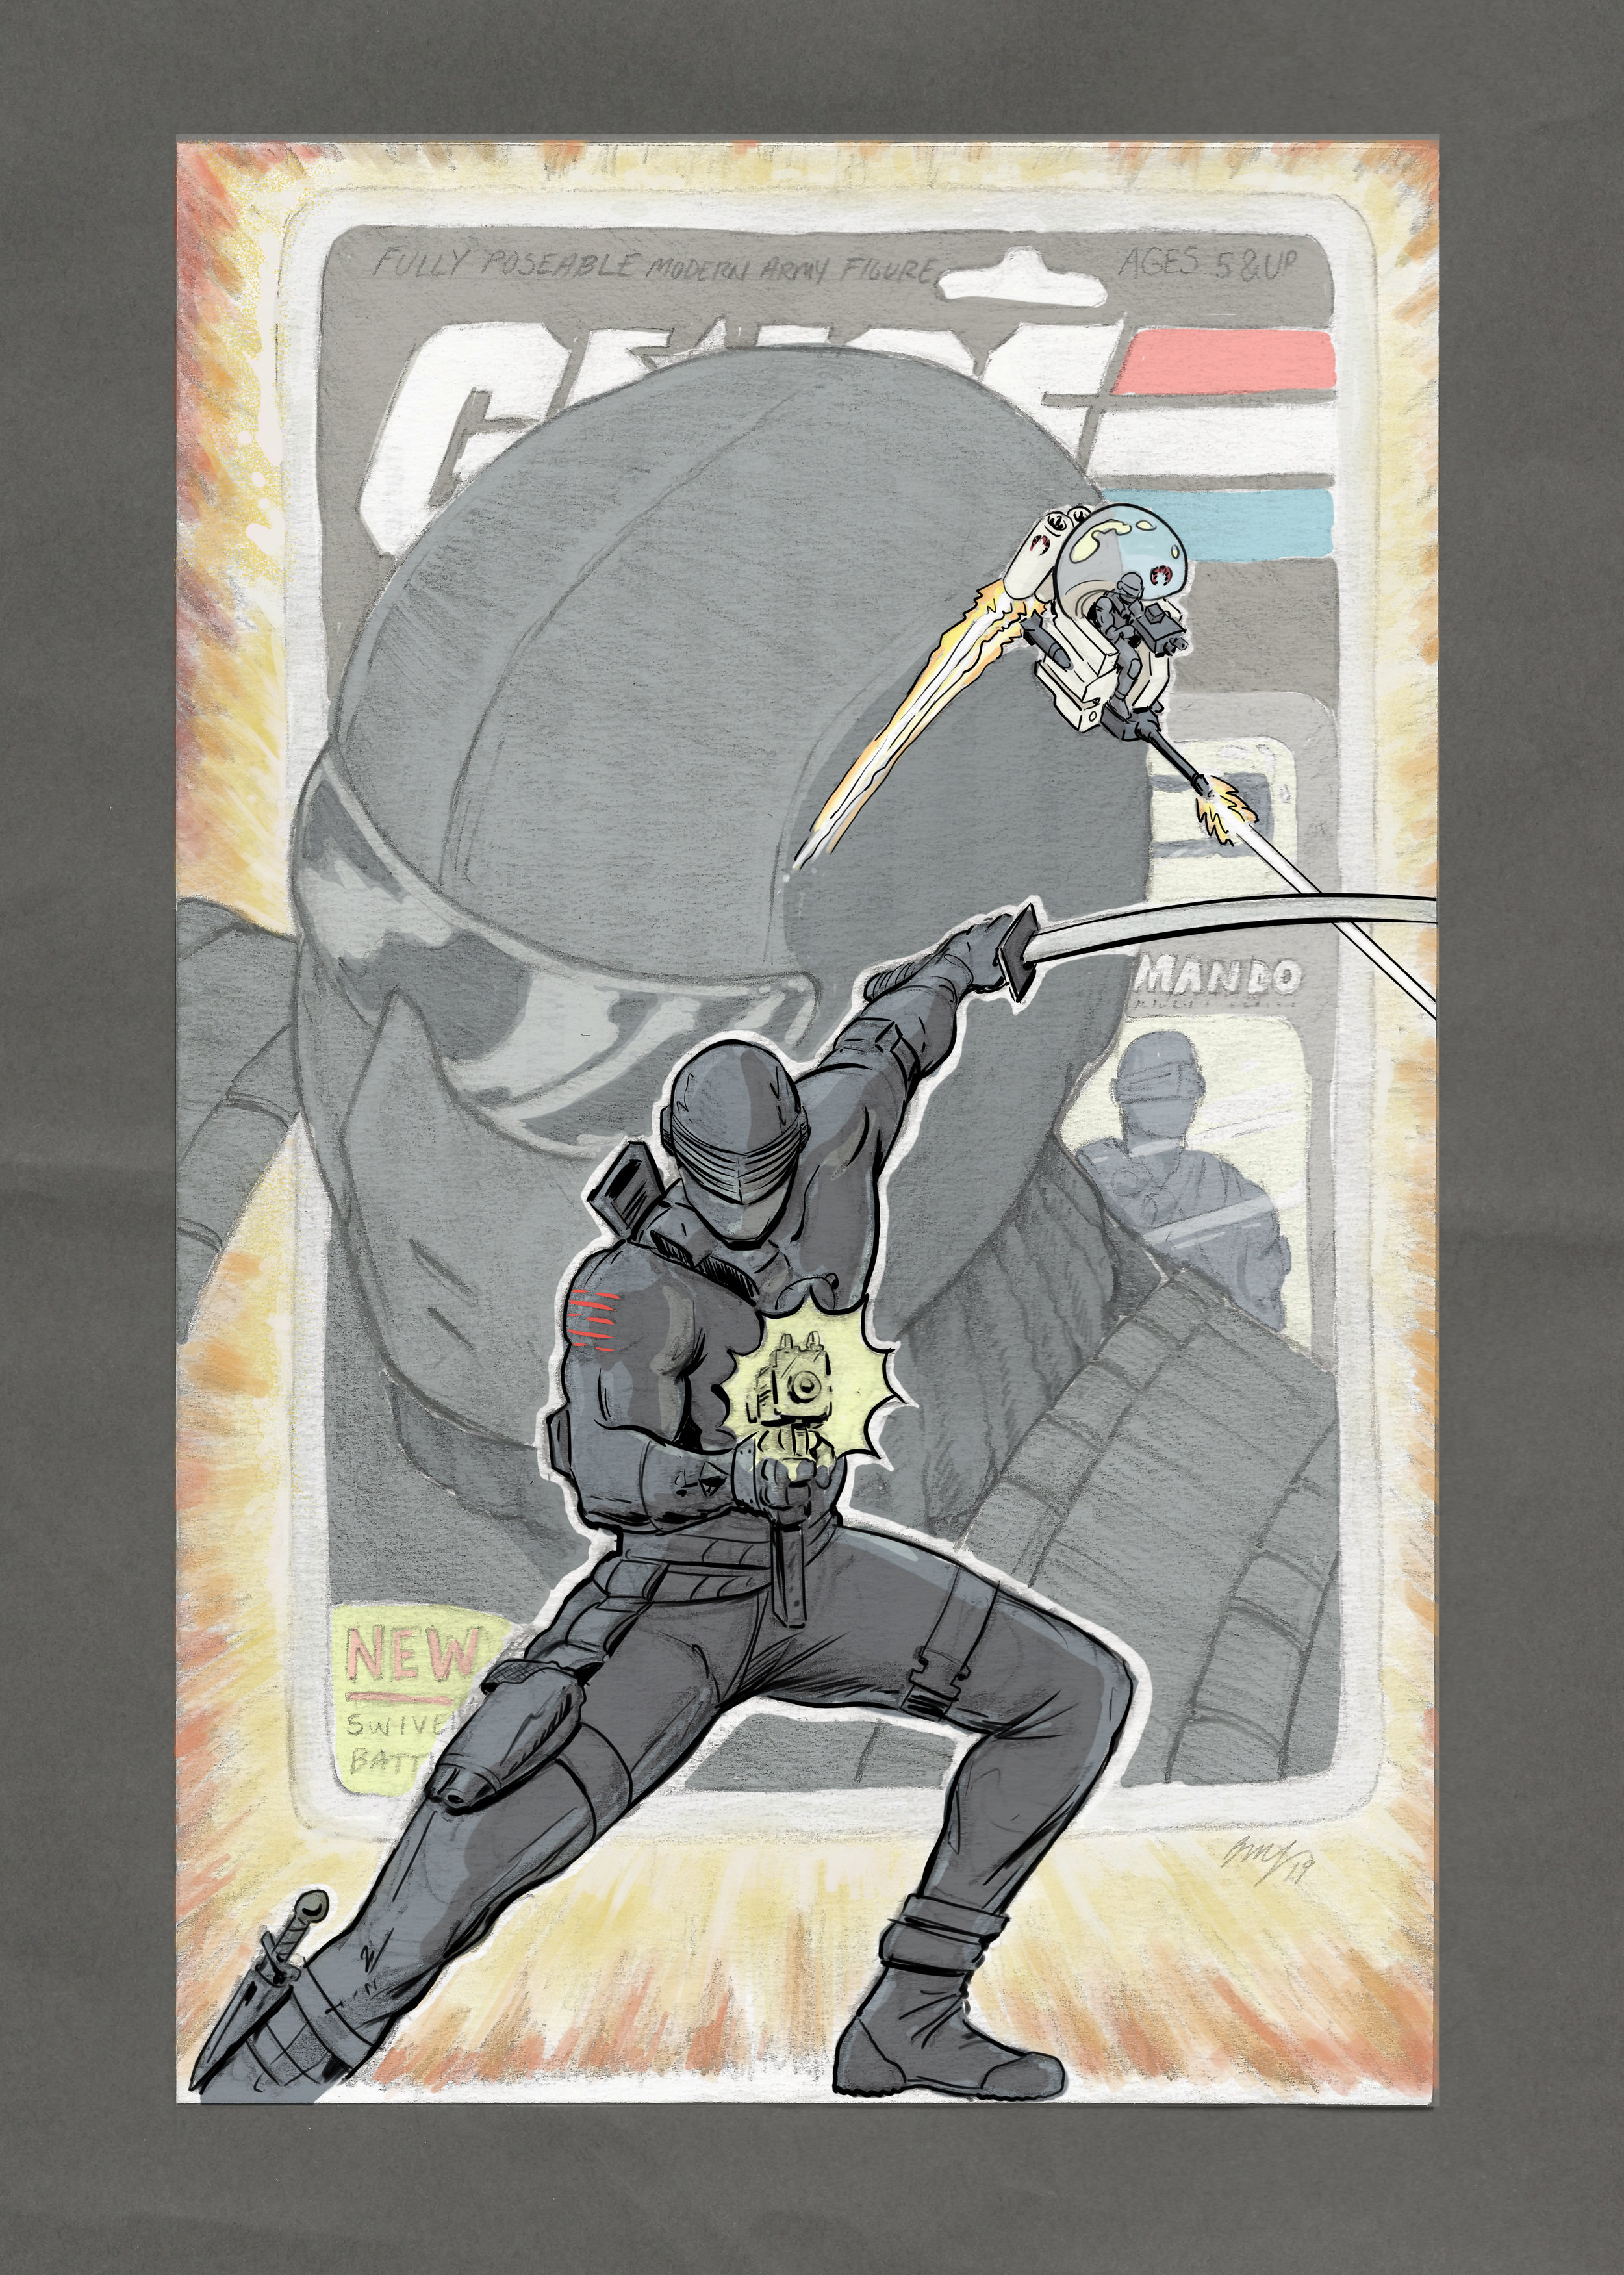 """Snake Eyes Homage  - Large head shot is based on the original design(1982). Snake Eyes in a Cobra Trouble Bubble (inspired by opening sequence of the animated G.I.Joe The Movie). The card back is a mishmash of the original and newer versions. Foreground Snake Eyes is the 1985 Version.  Paper - Typing  Size - 8.5'"""" x 5.5""""(folded)  Medium - Drafting Pencil lead and HB Pencil ; Eraser - Kneaded / Stick.  Color - Digital Color (Sketchbook Pro)"""